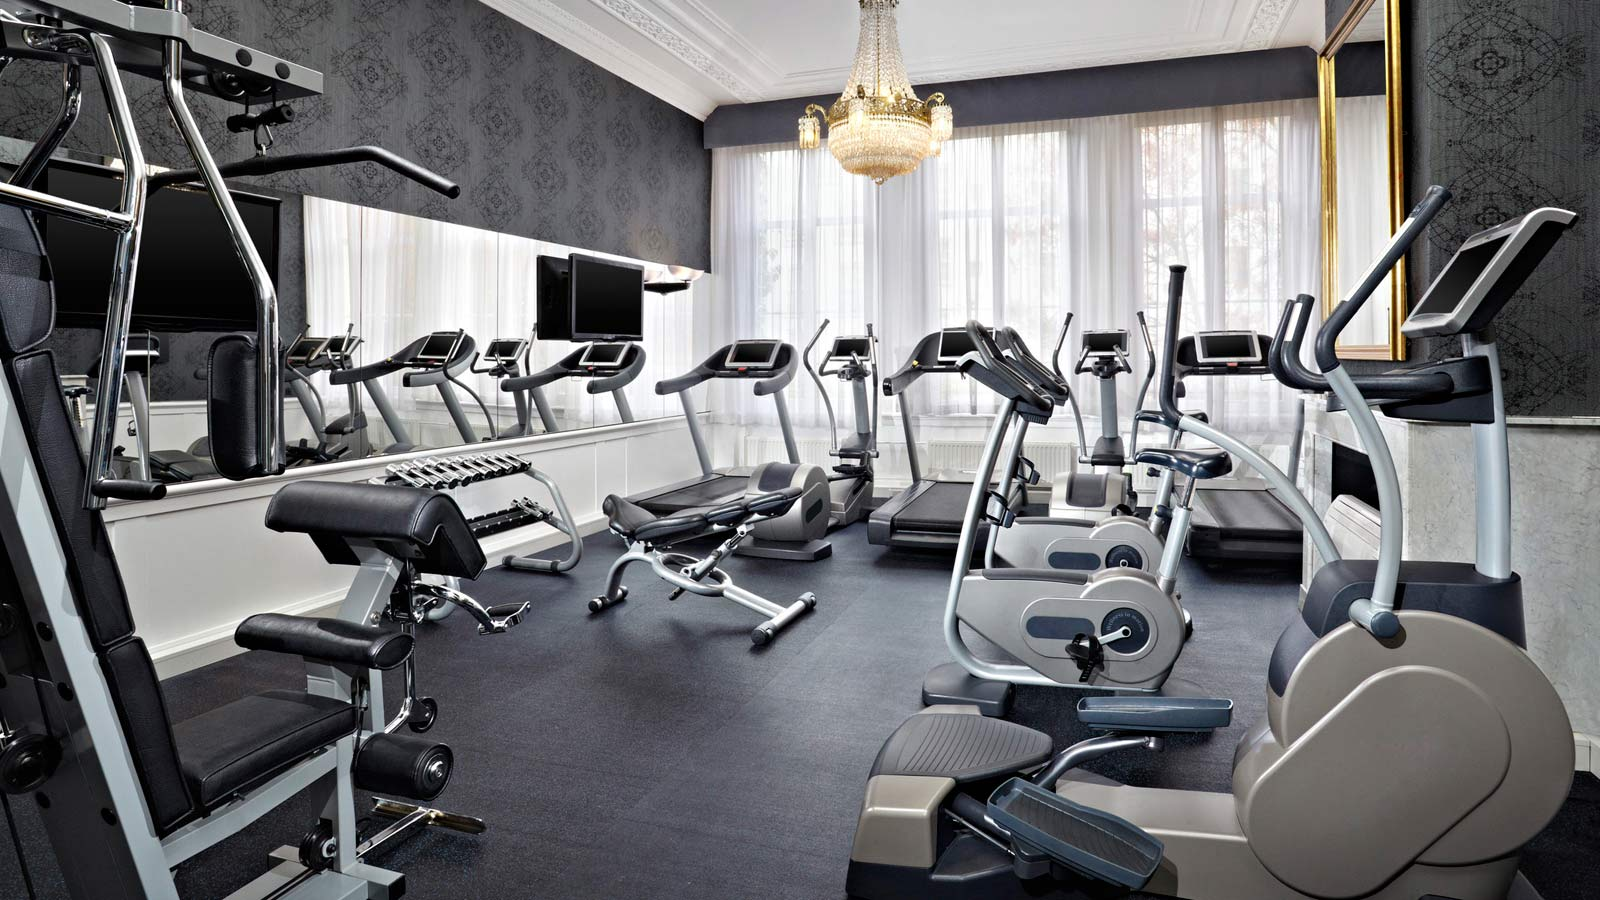 Hotel Gym Deep Cleaning